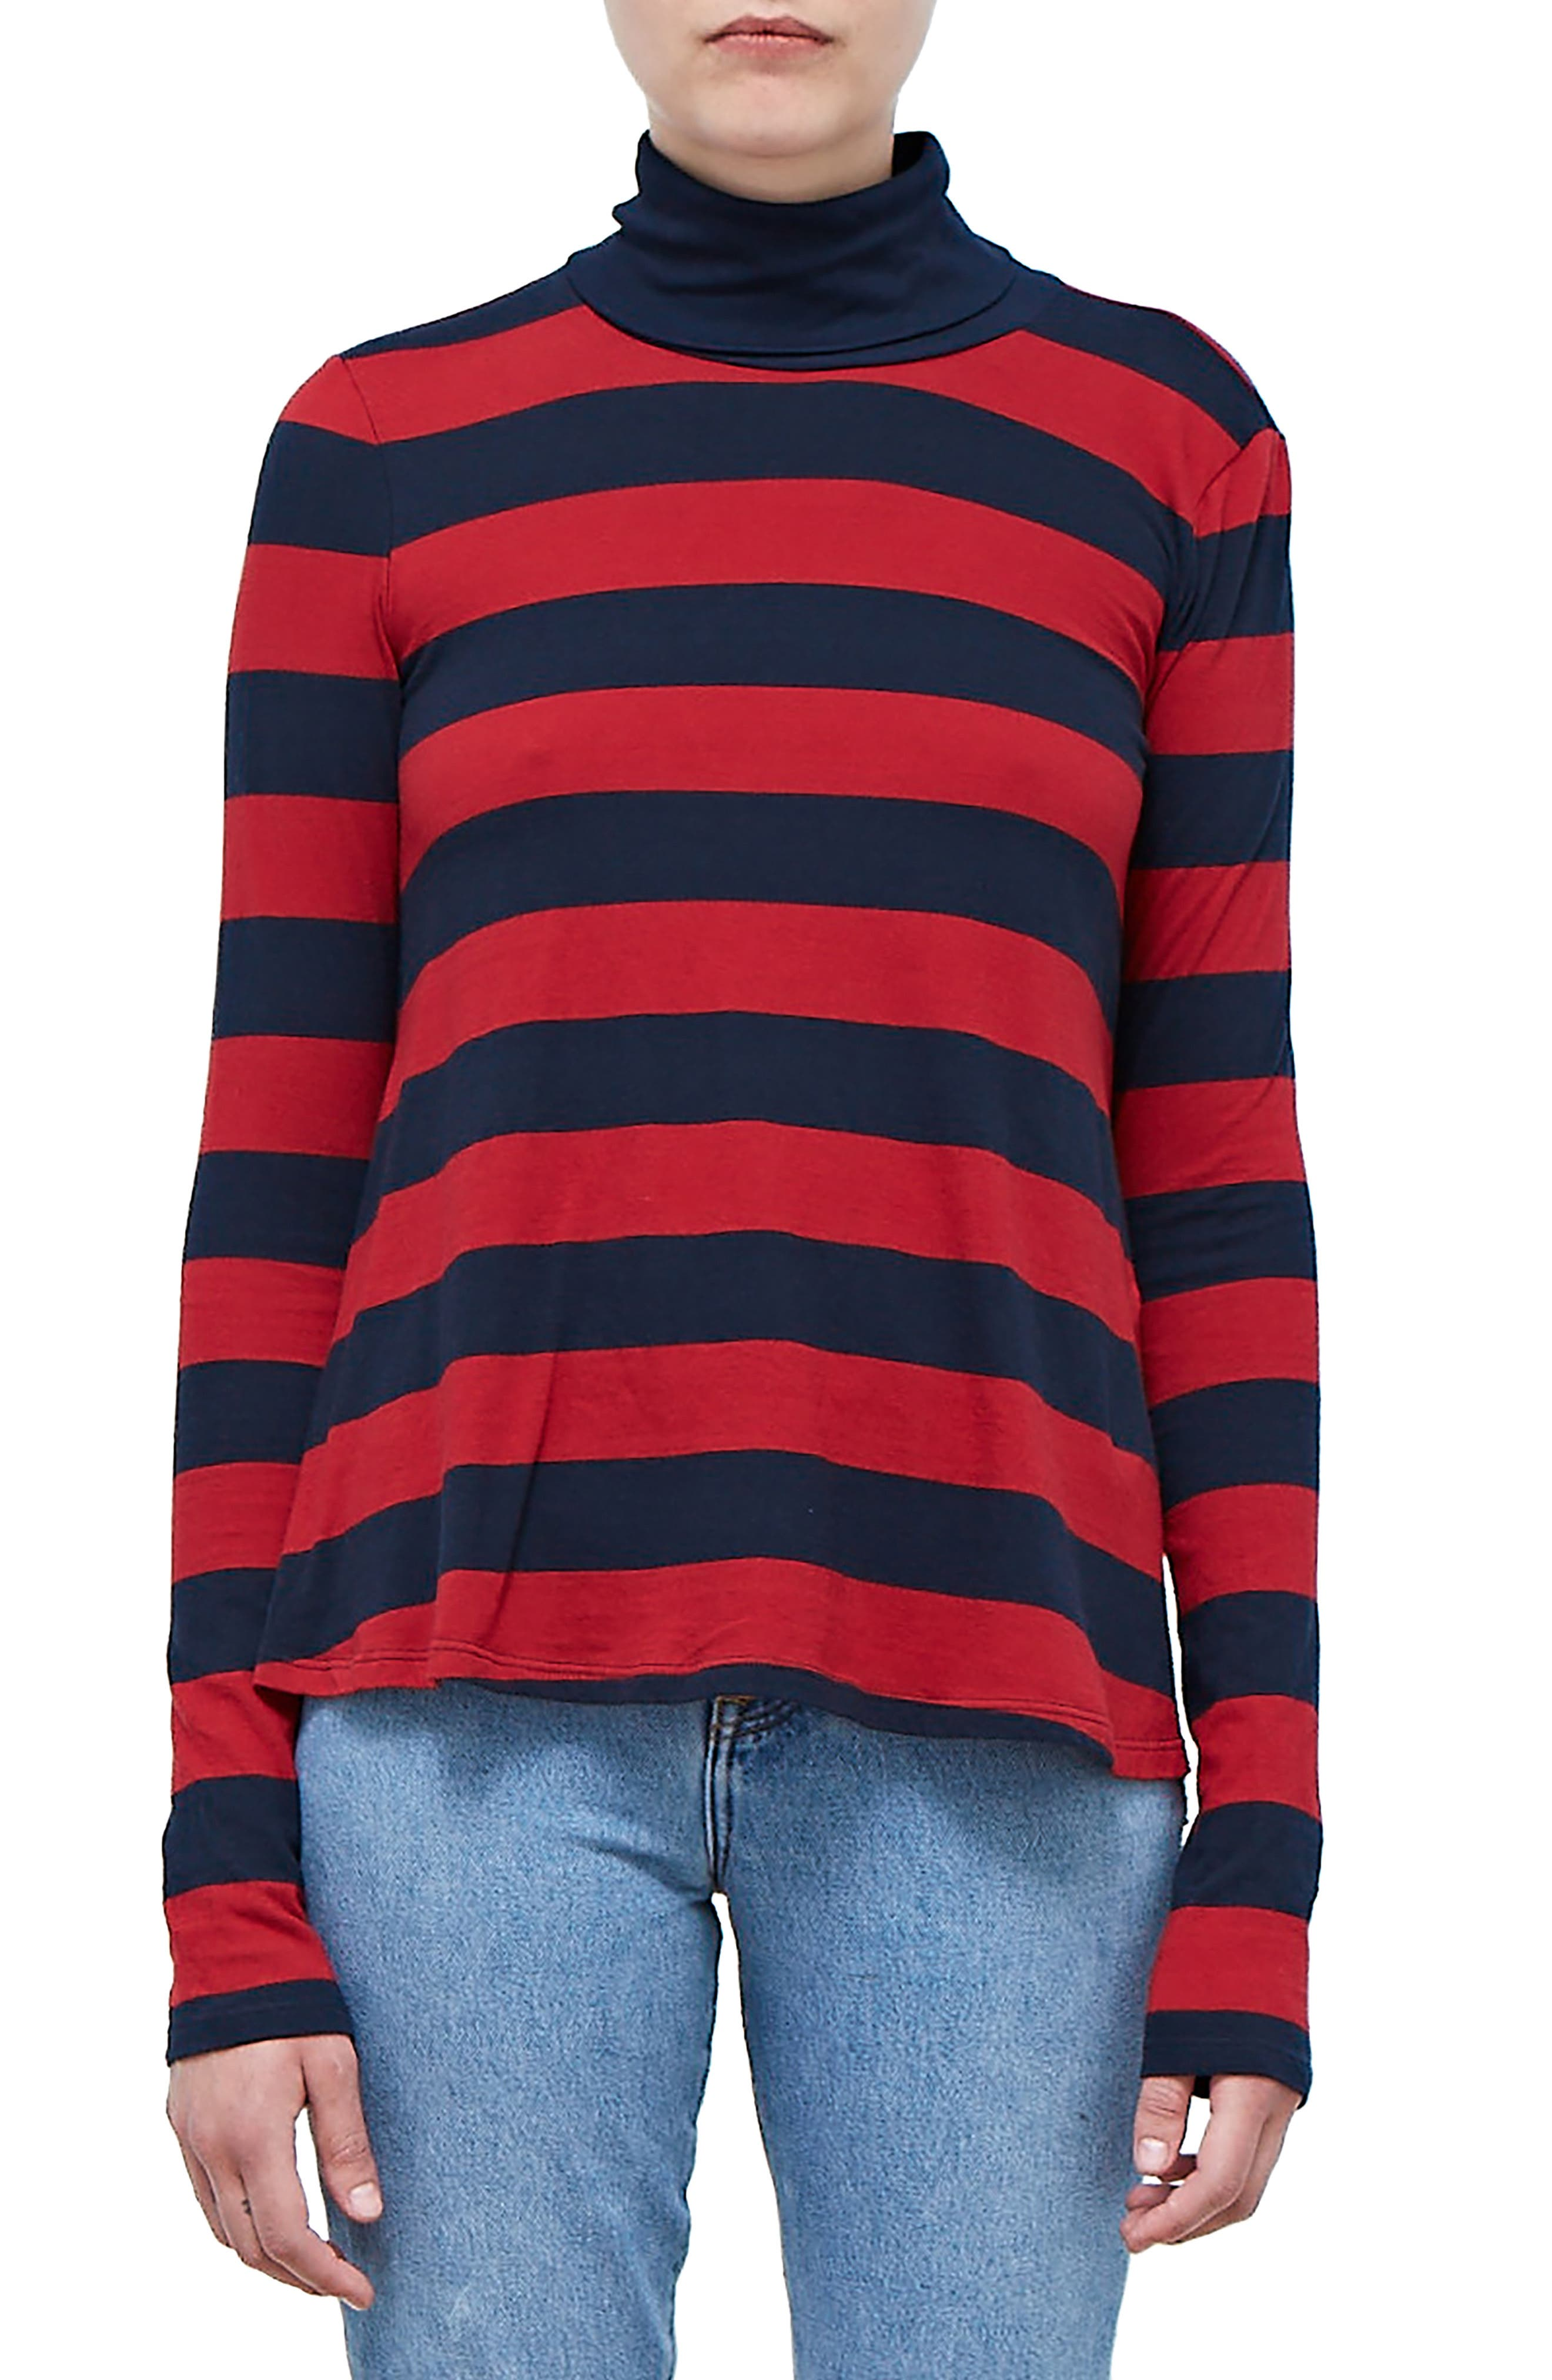 Rugby Stripe Turtleneck Top,                         Main,                         color, NAVY/ DEEP RED